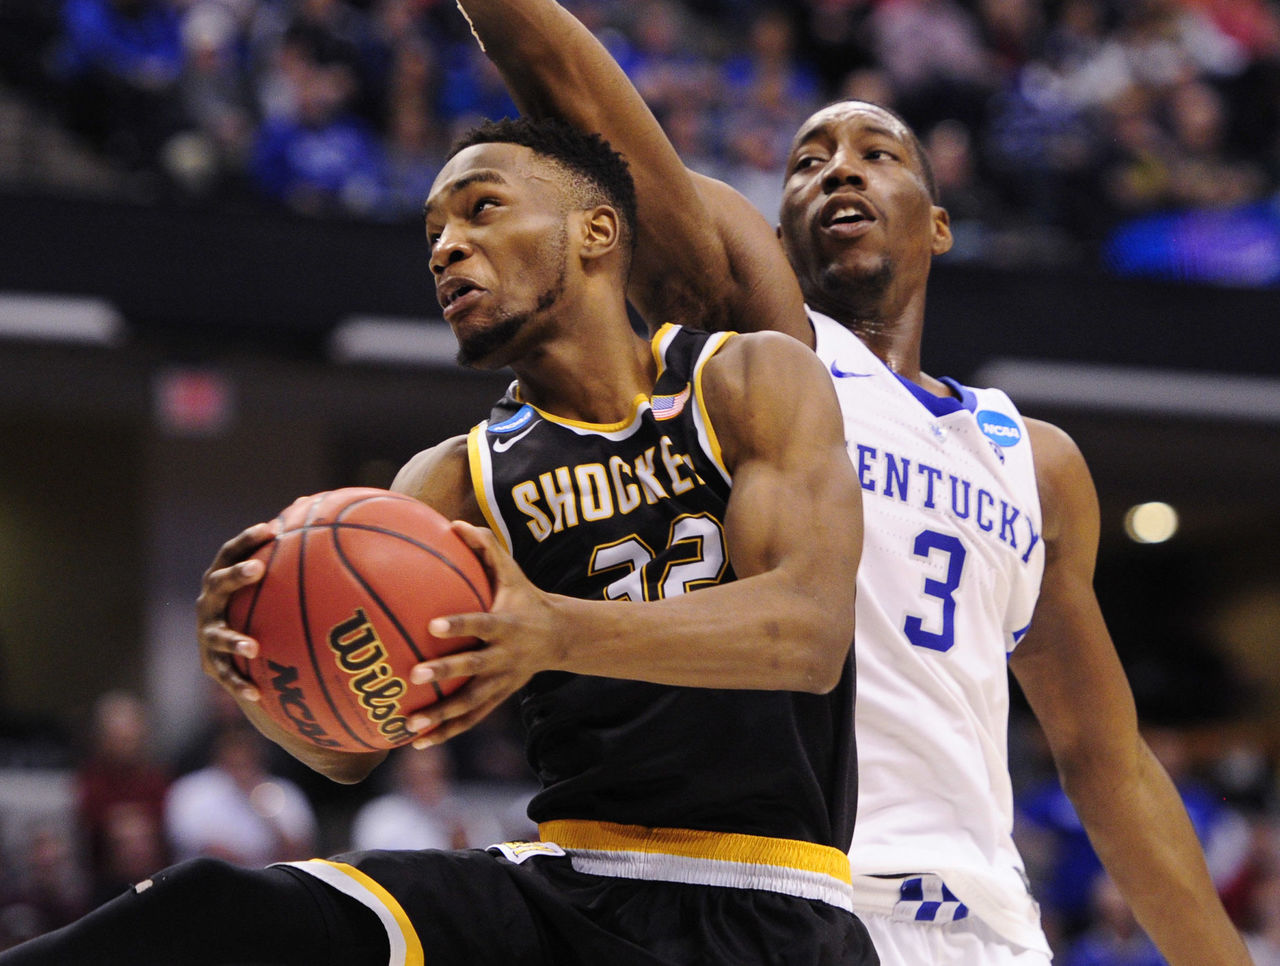 Cropped 2017 03 19t205531z 1244562212 nocid rtrmadp 3 ncaa basketball ncaa tournament second round kentucky vs wichita state